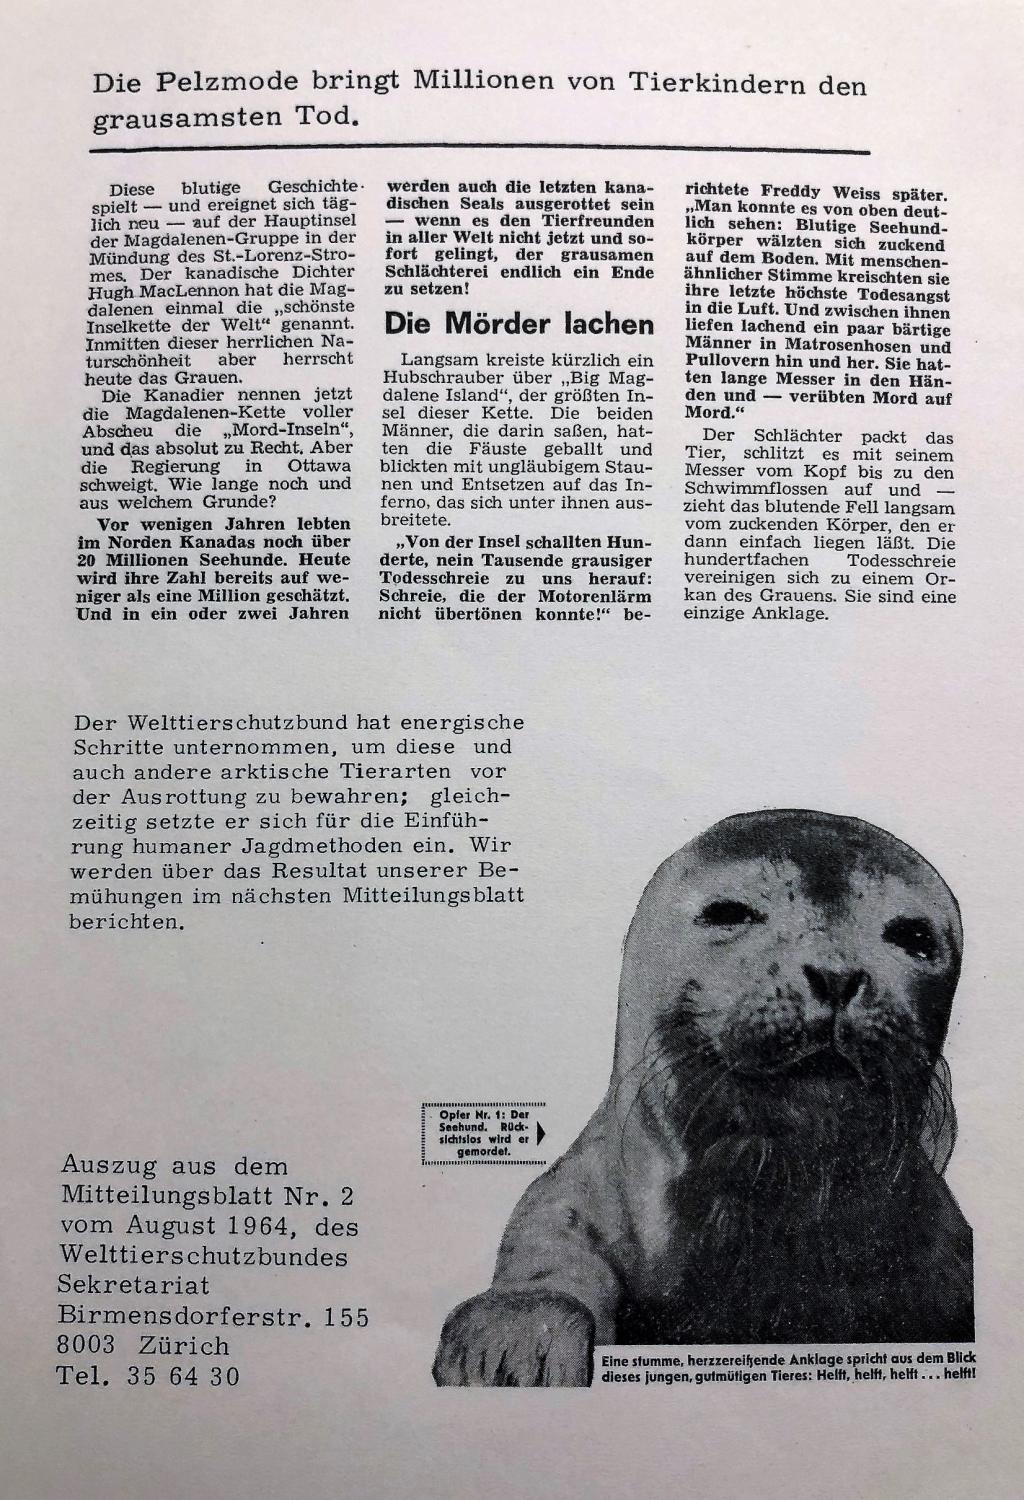 World Animal Protection League Handbill (German), 1964, from the Wim Dekok Animal Rights Collection (MC 566)